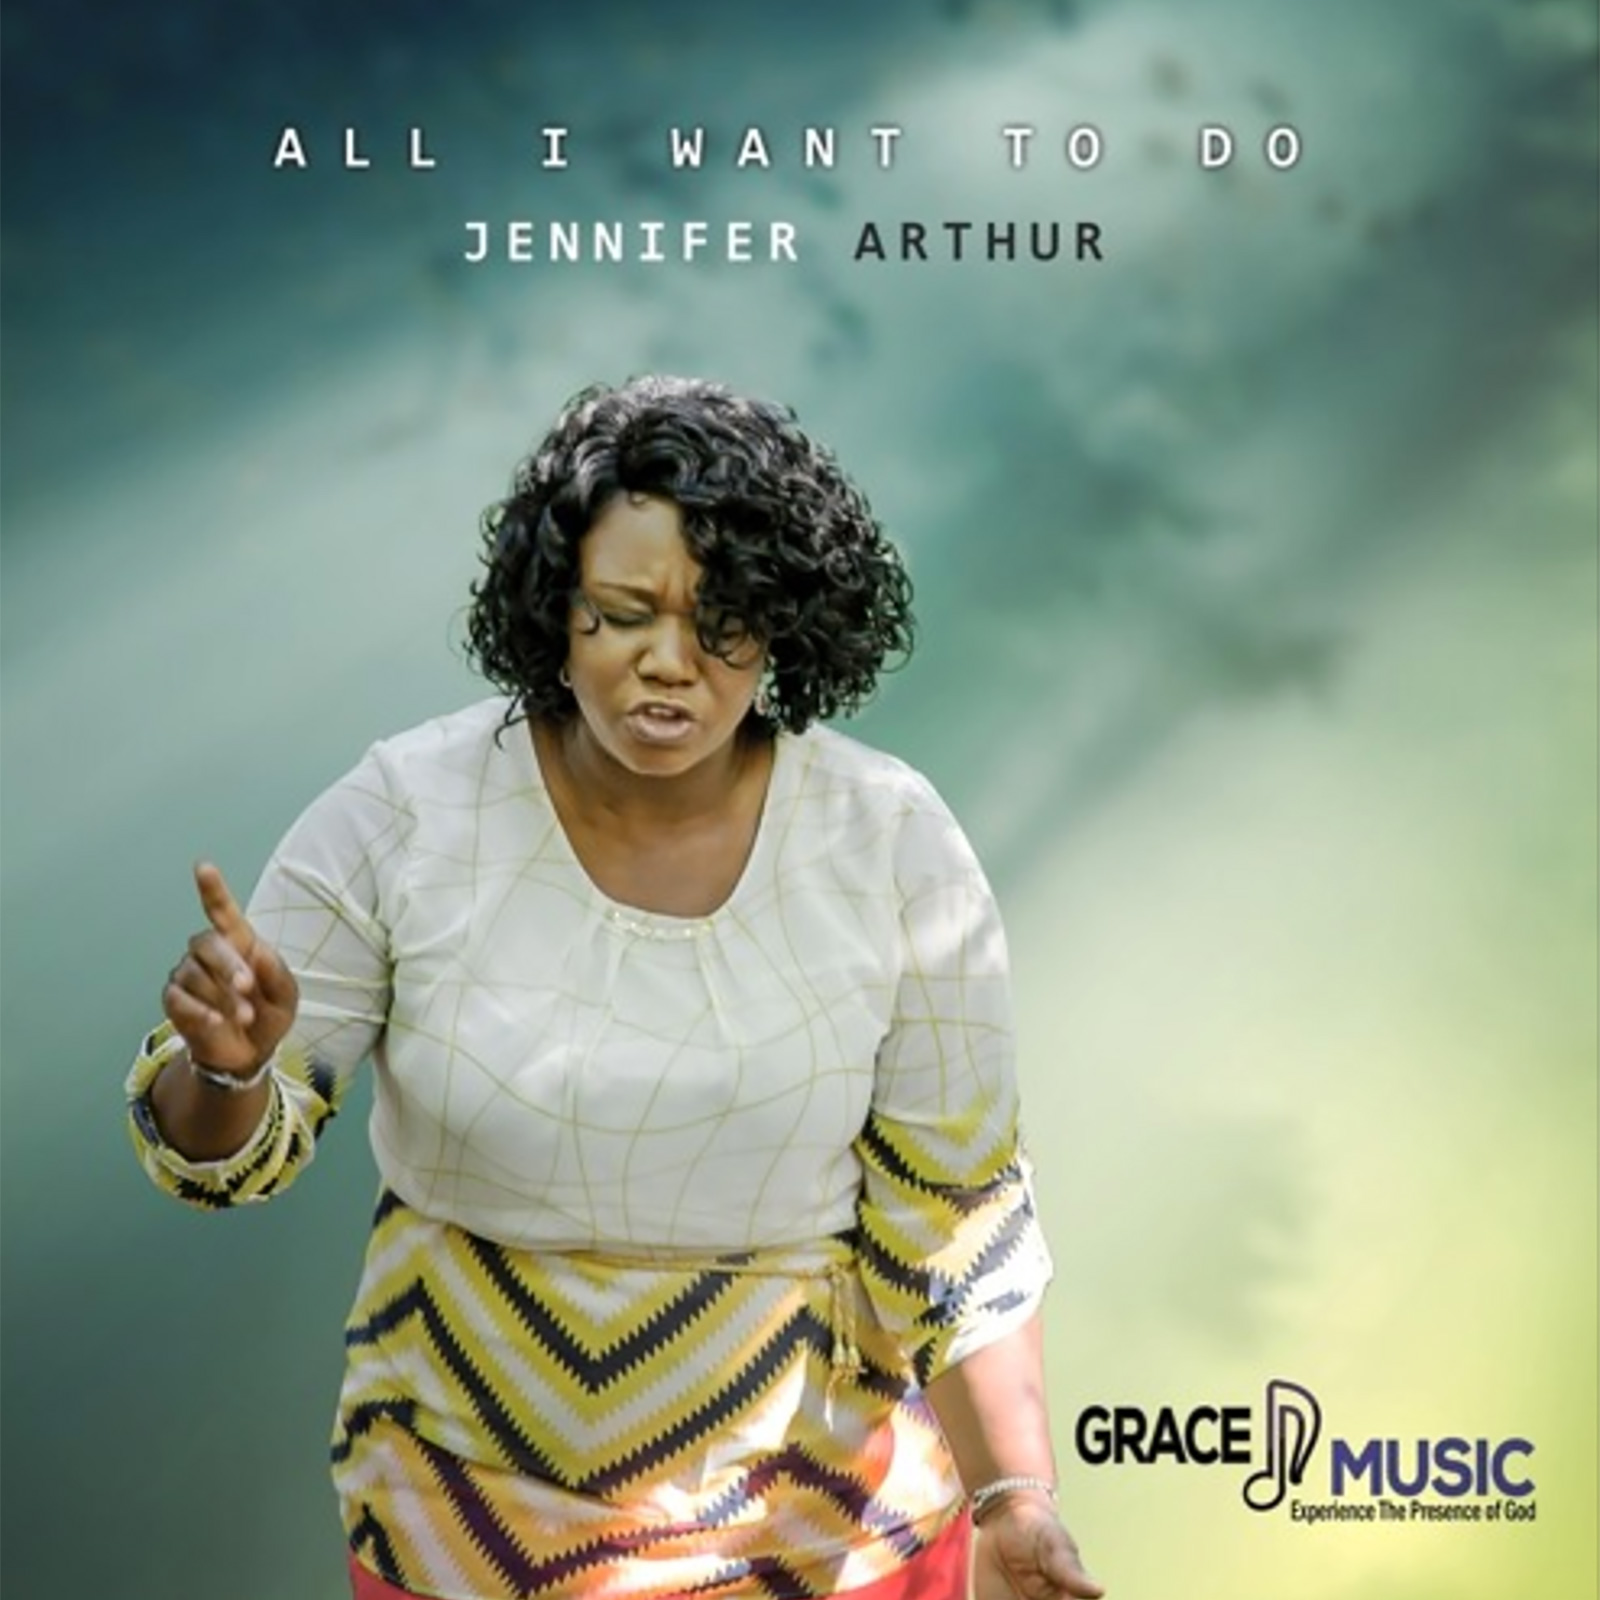 All I Want To Do by Jennifer Arthur